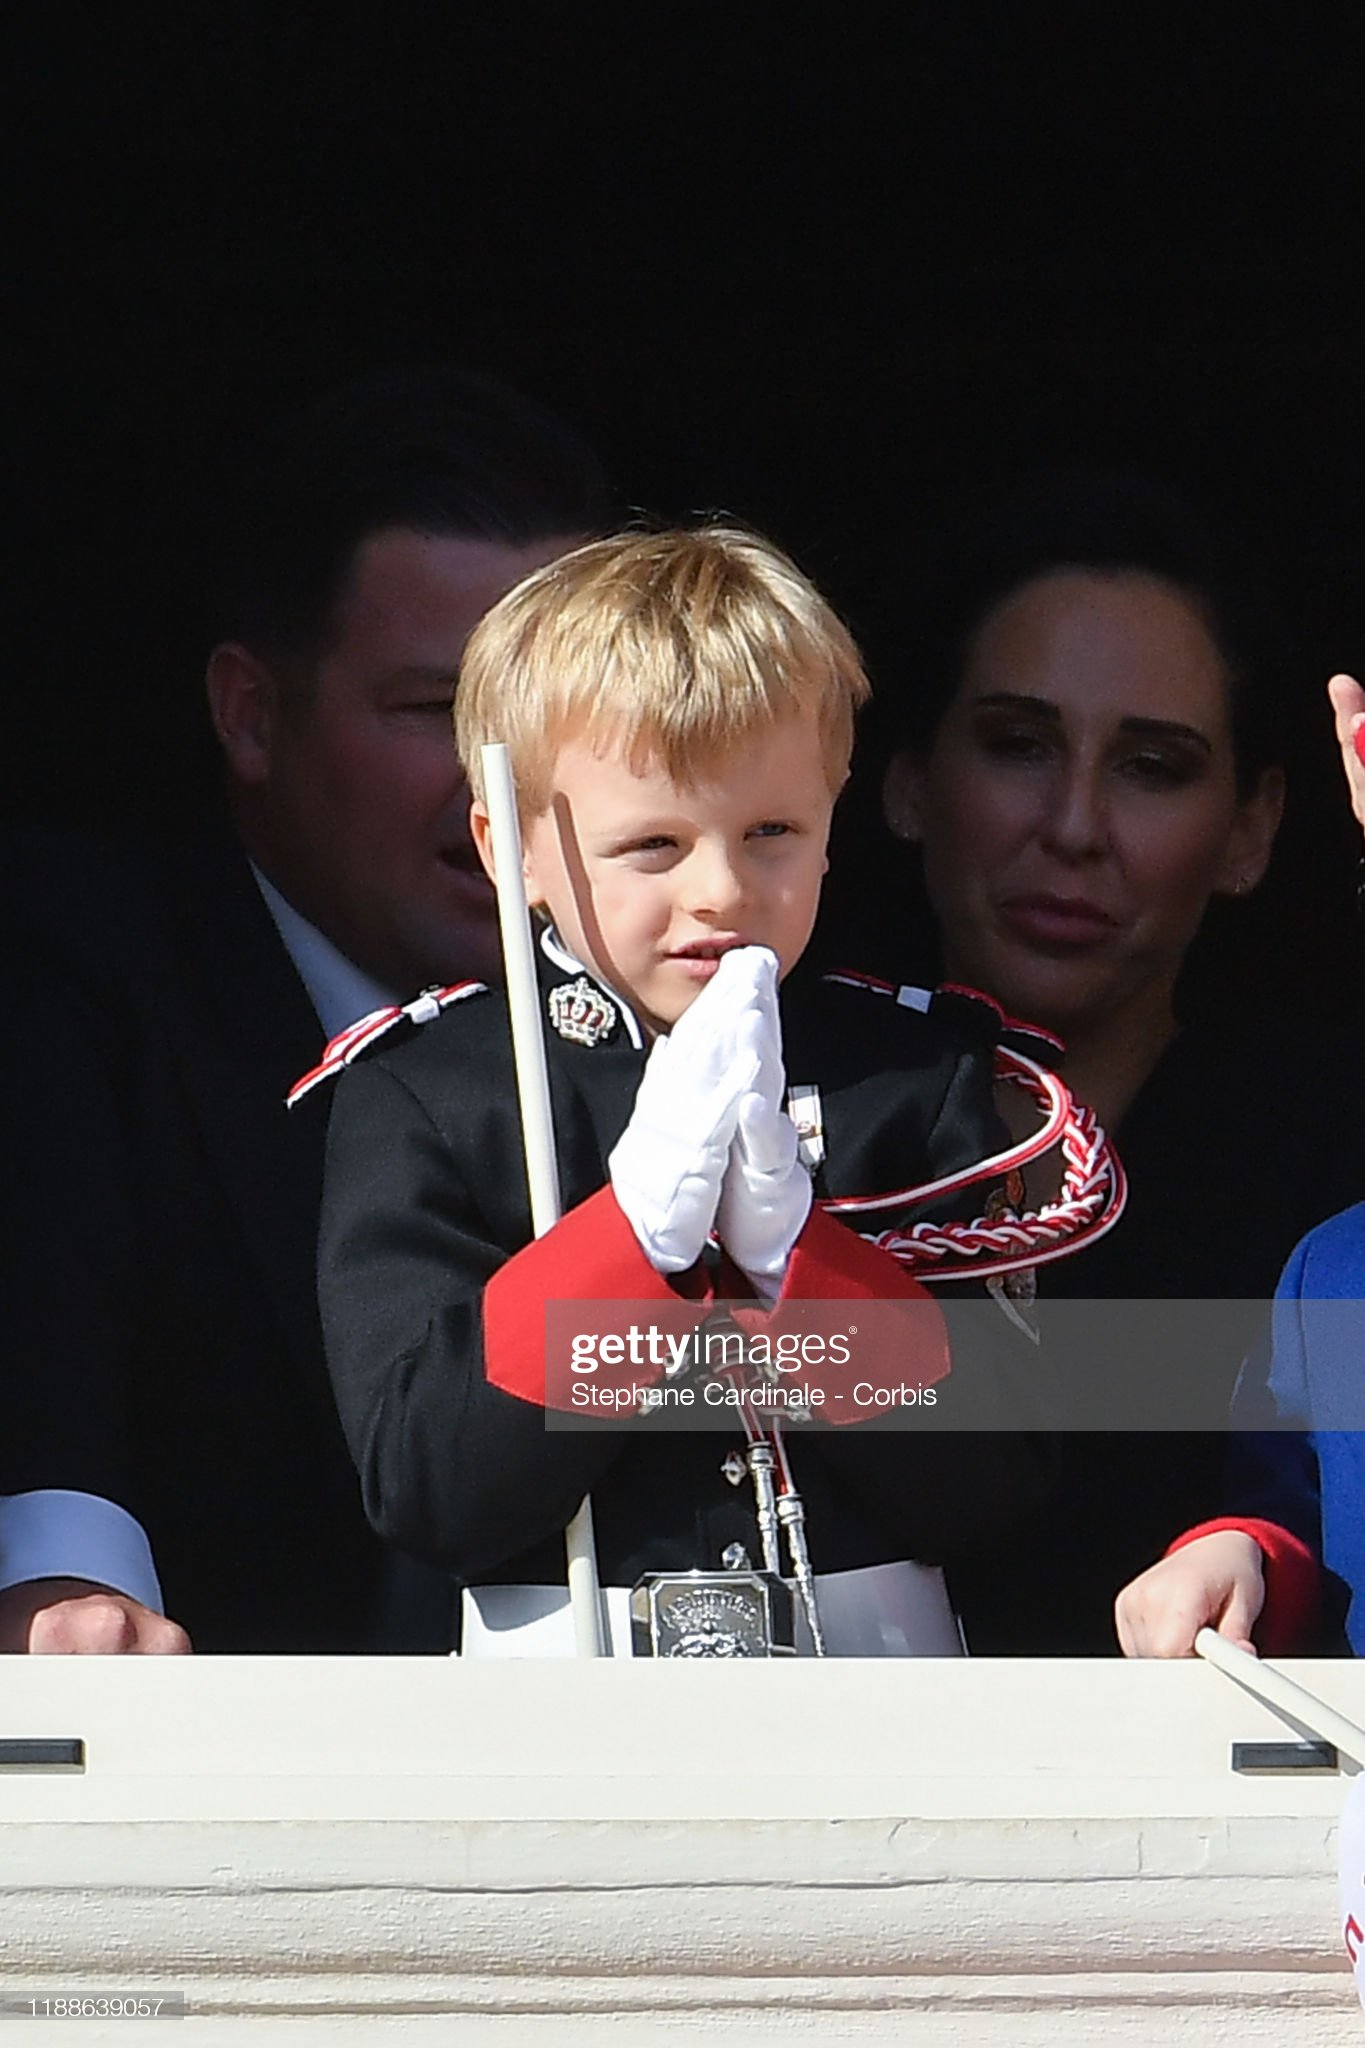 prince-jacques-of-monaco-poses-at-the-palace-balcony-during-the-day-picture-id1188639057